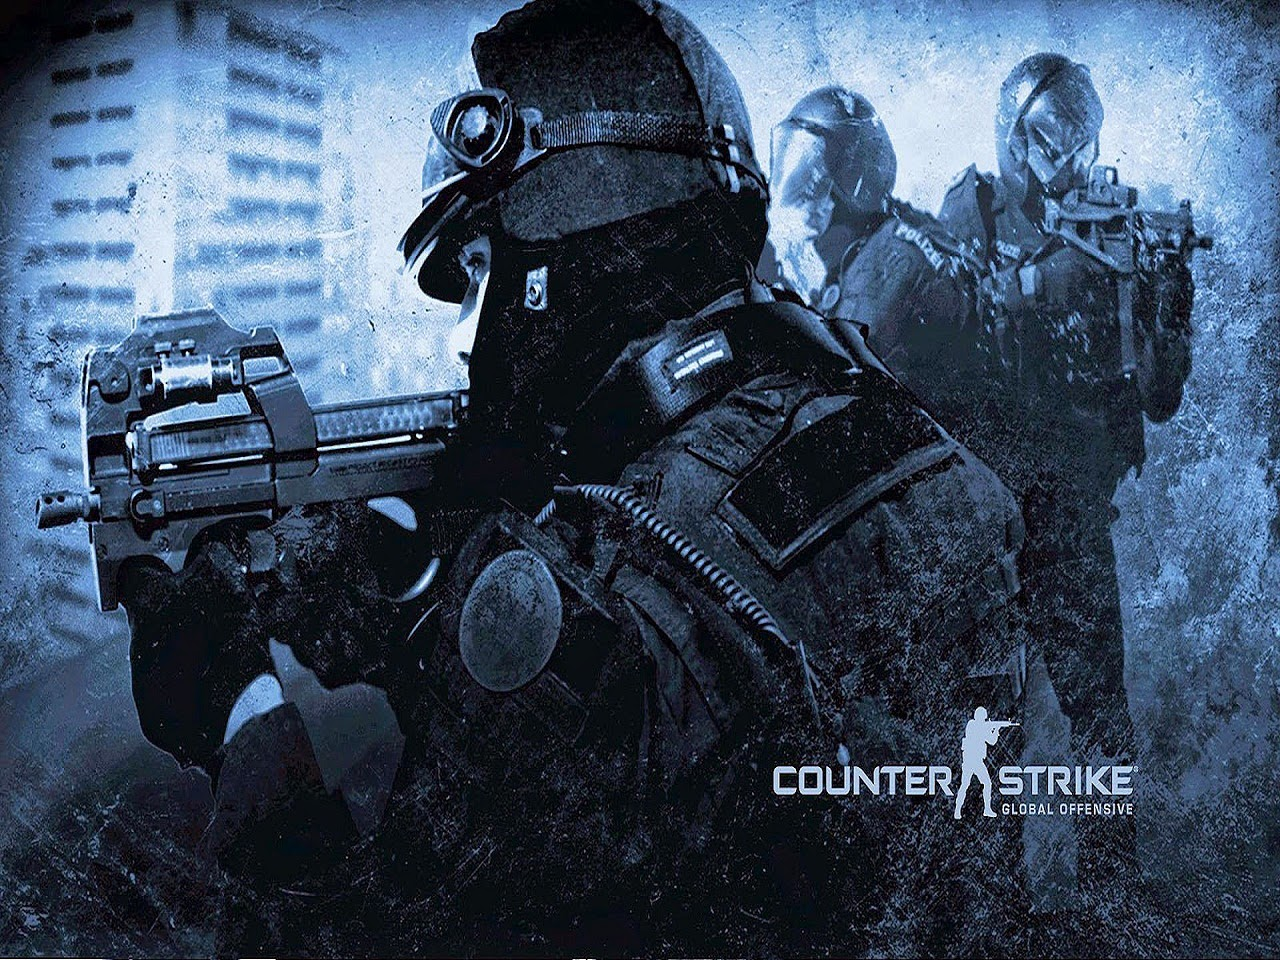 736521 Cataclysm Interface Part 1 Blue Posts in addition Rn8FCNMoiHA furthermore Playerunknowns Battlegrounds Creator Teases A Ui Refresh likewise Hmd Global Nokia Event On April 4 In India Nokia 8 Sirocco Nokia 6 What Else To Expect 5115507 as well 58 Counter Strike Global Offensive. on tabs battlegrounds